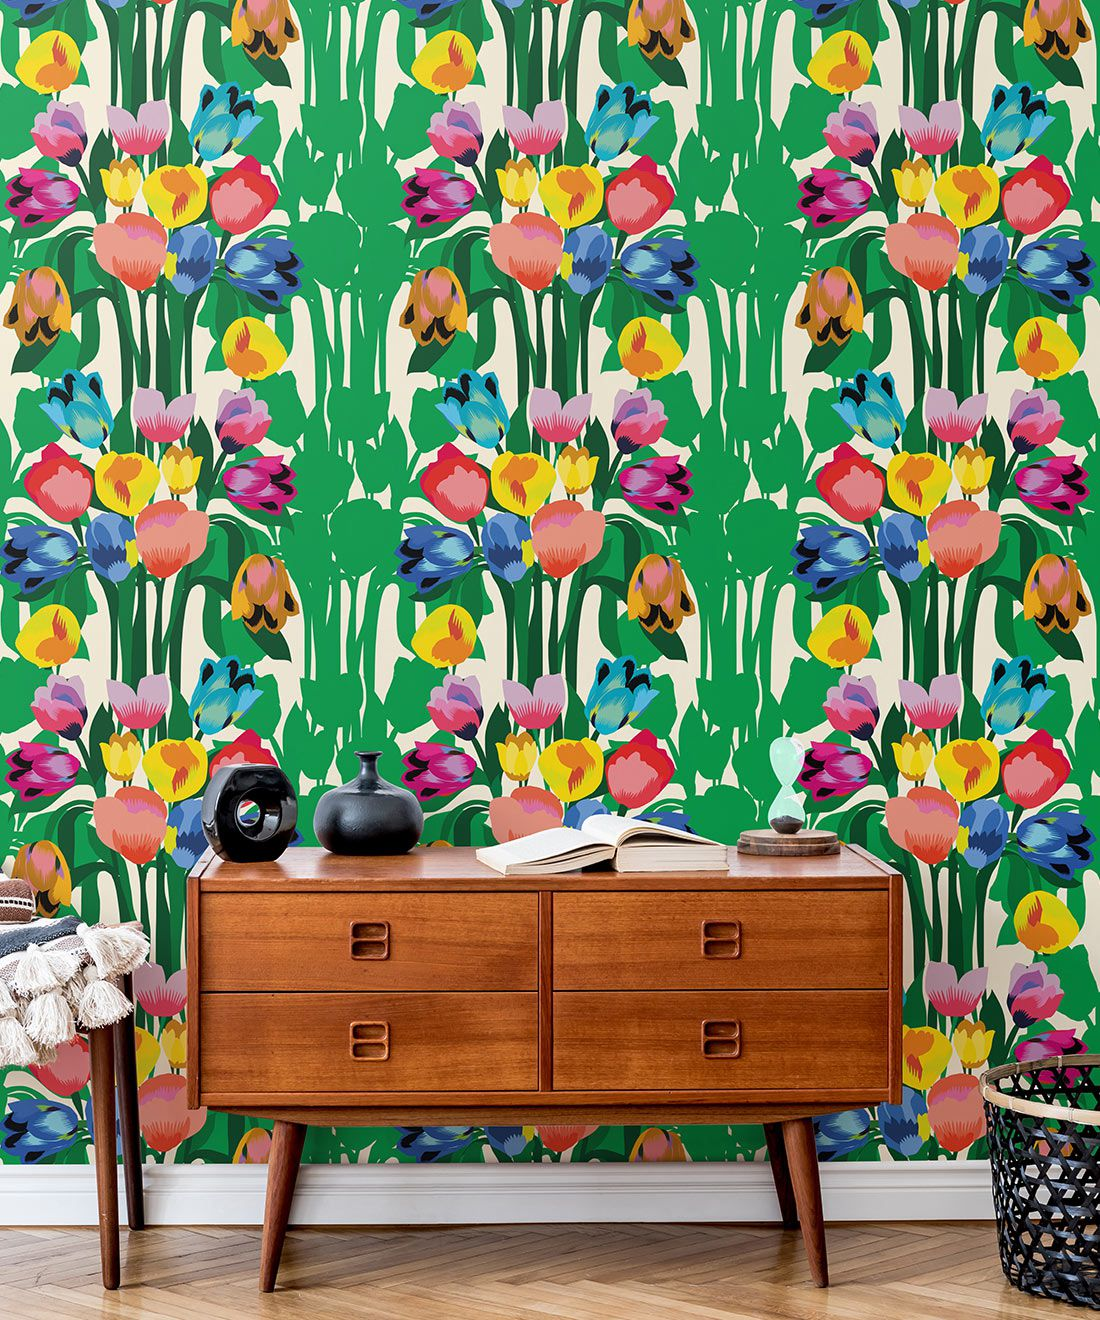 Tulips Wallpaper • Colourful Floral Wallpaper • Insitu